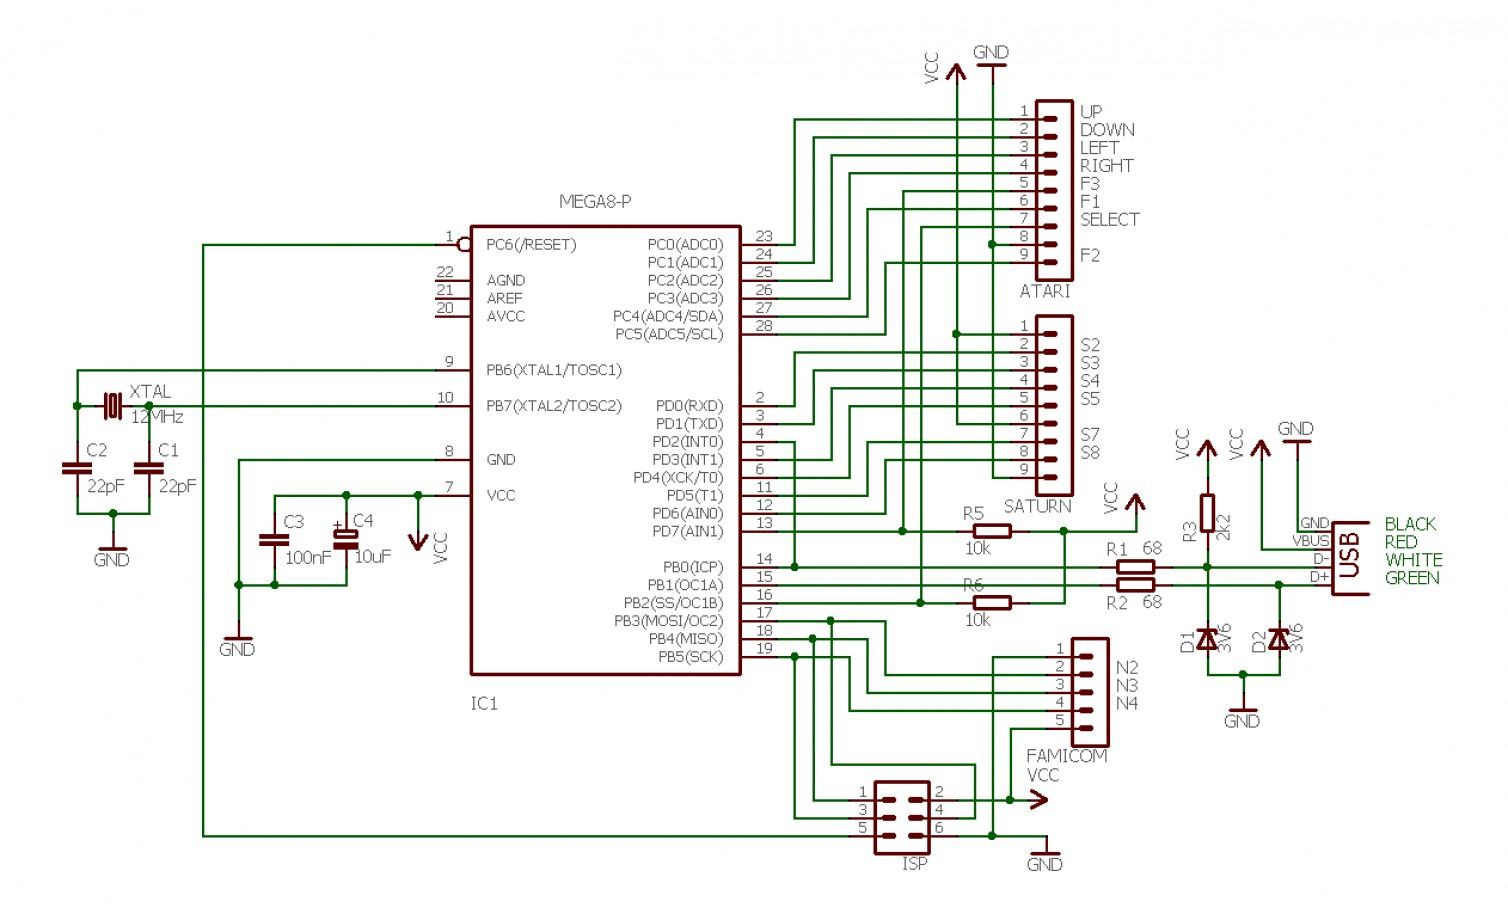 Ps2 Pump Diagram - Wiring Diagram Detailed - Wiring Diagram For Ps2 Controller To Usb